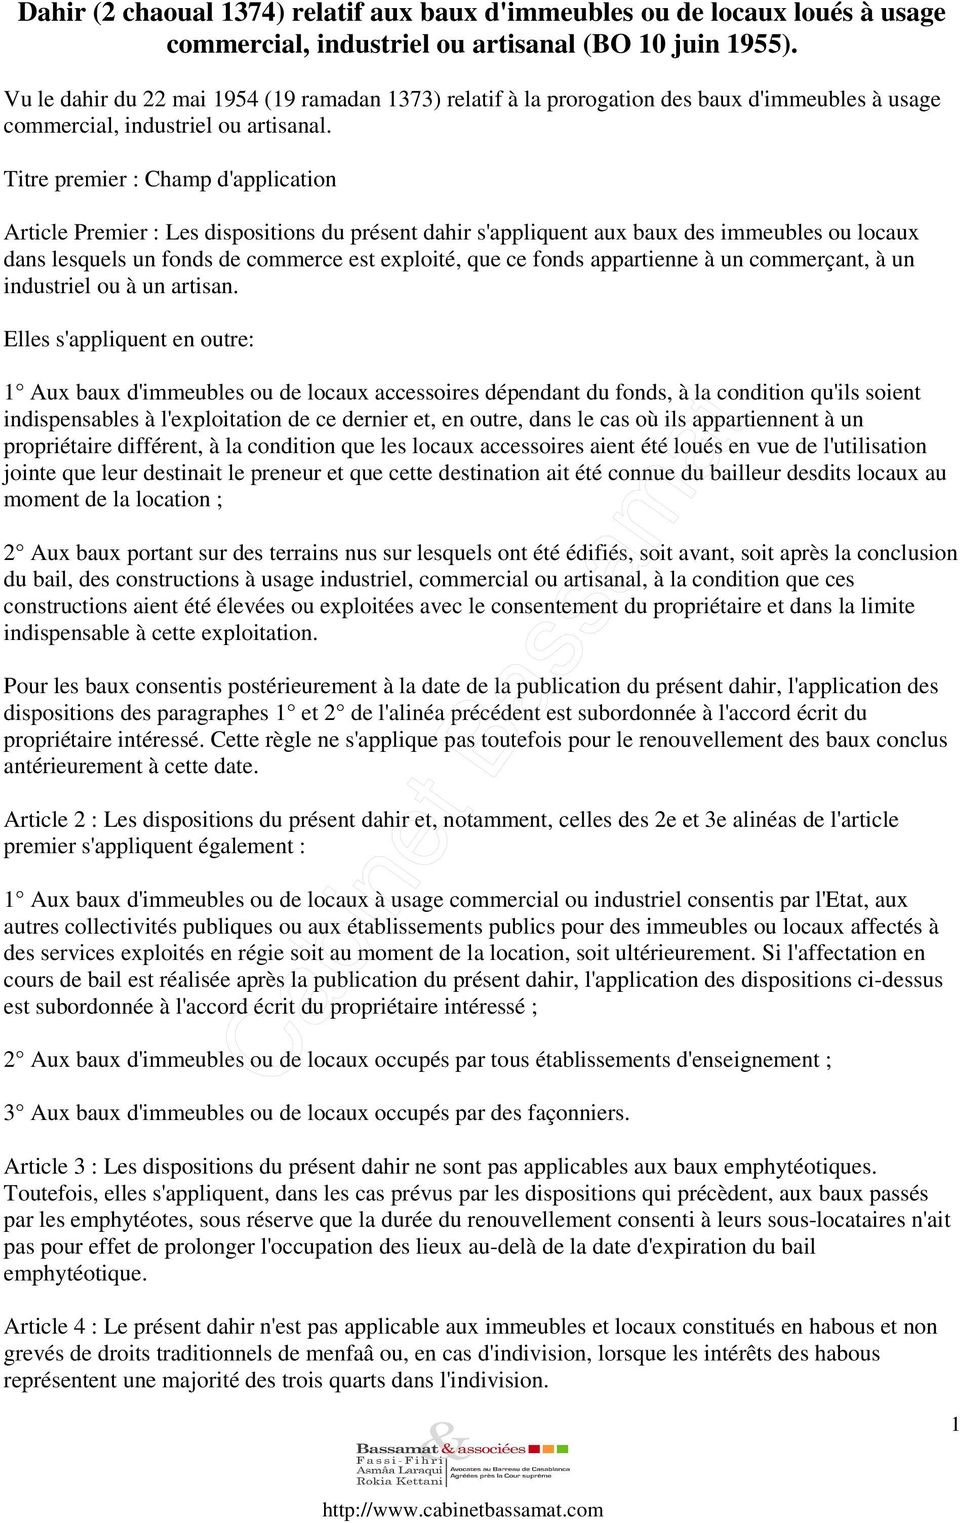 Titre premier : Champ d'application Article Premier : Les dispositions du présent dahir s'appliquent aux baux des immeubles ou locaux dans lesquels un fonds de commerce est exploité, que ce fonds